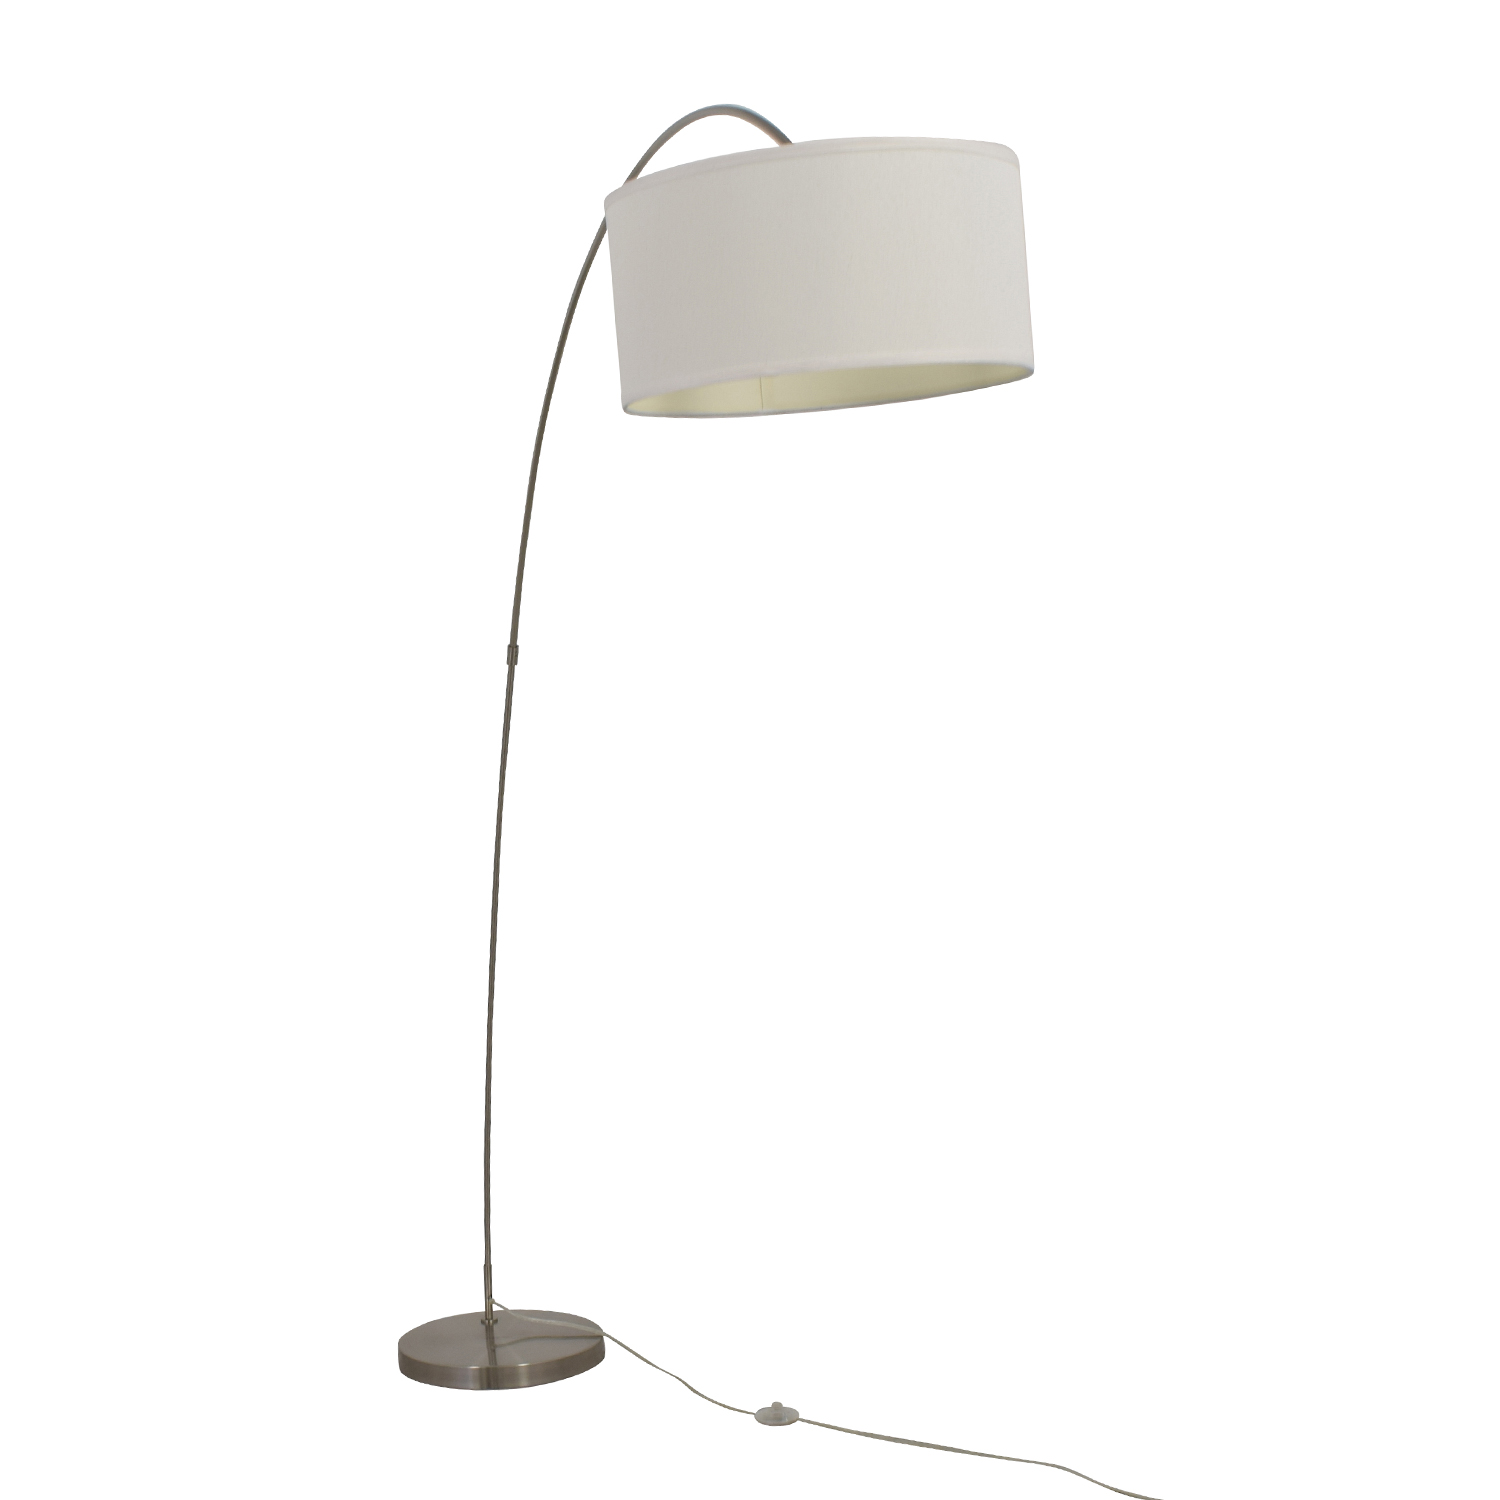 Artiva USA Artiva USA Adelina Floor Arc Lamp discount